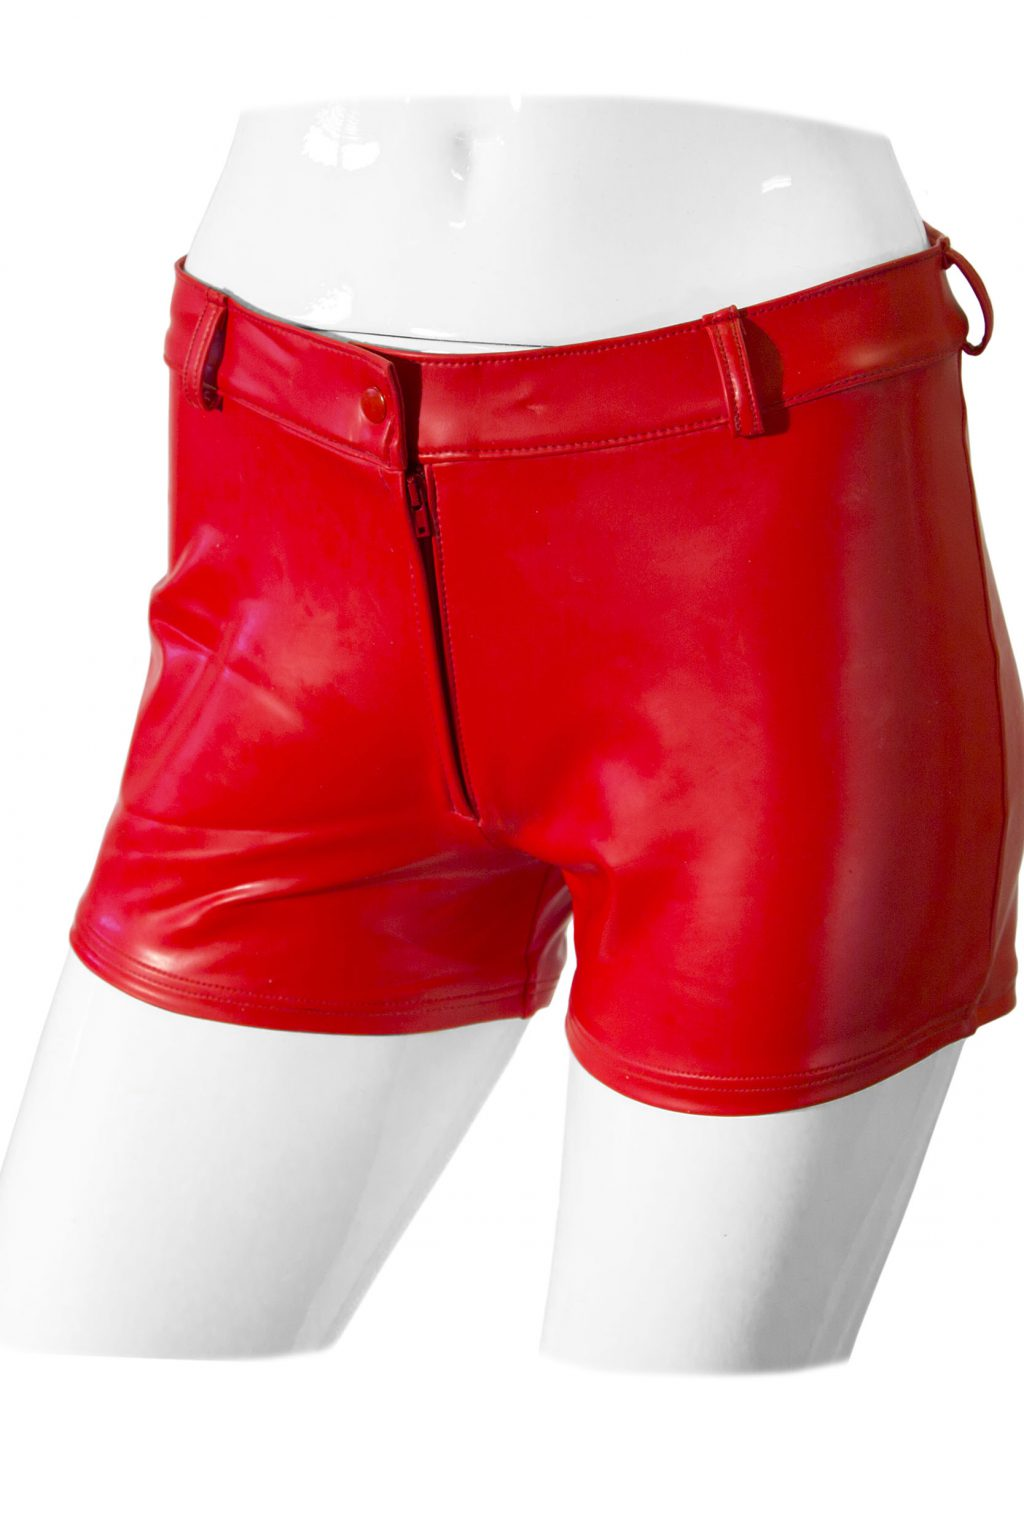 DATEX RED HOTPANTS